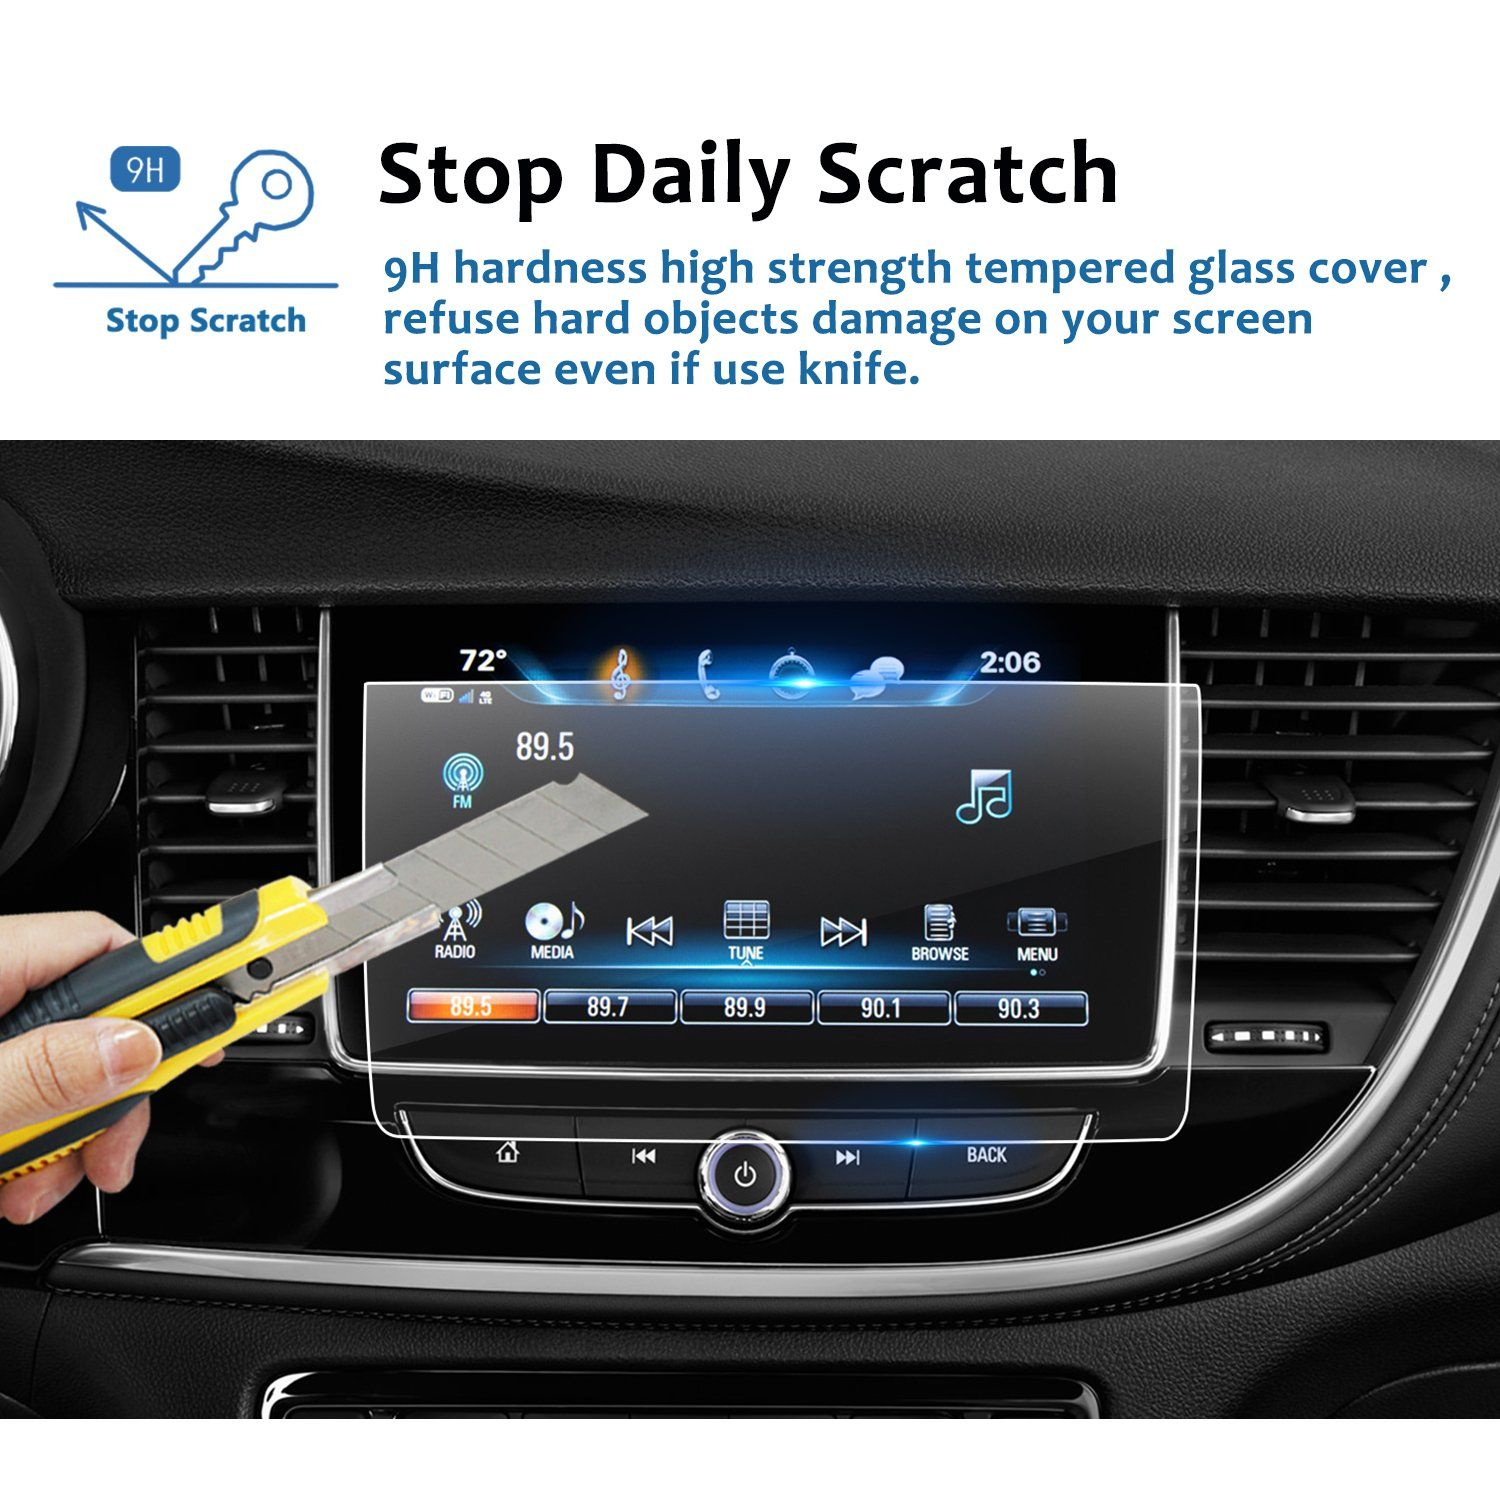 20182019 Buick Encore 8inch Car Navigation Screen Protector Lfotpp Clear Tempered Glass Infotainment Display Indash Car Navigation Infotainment Tempered Glass